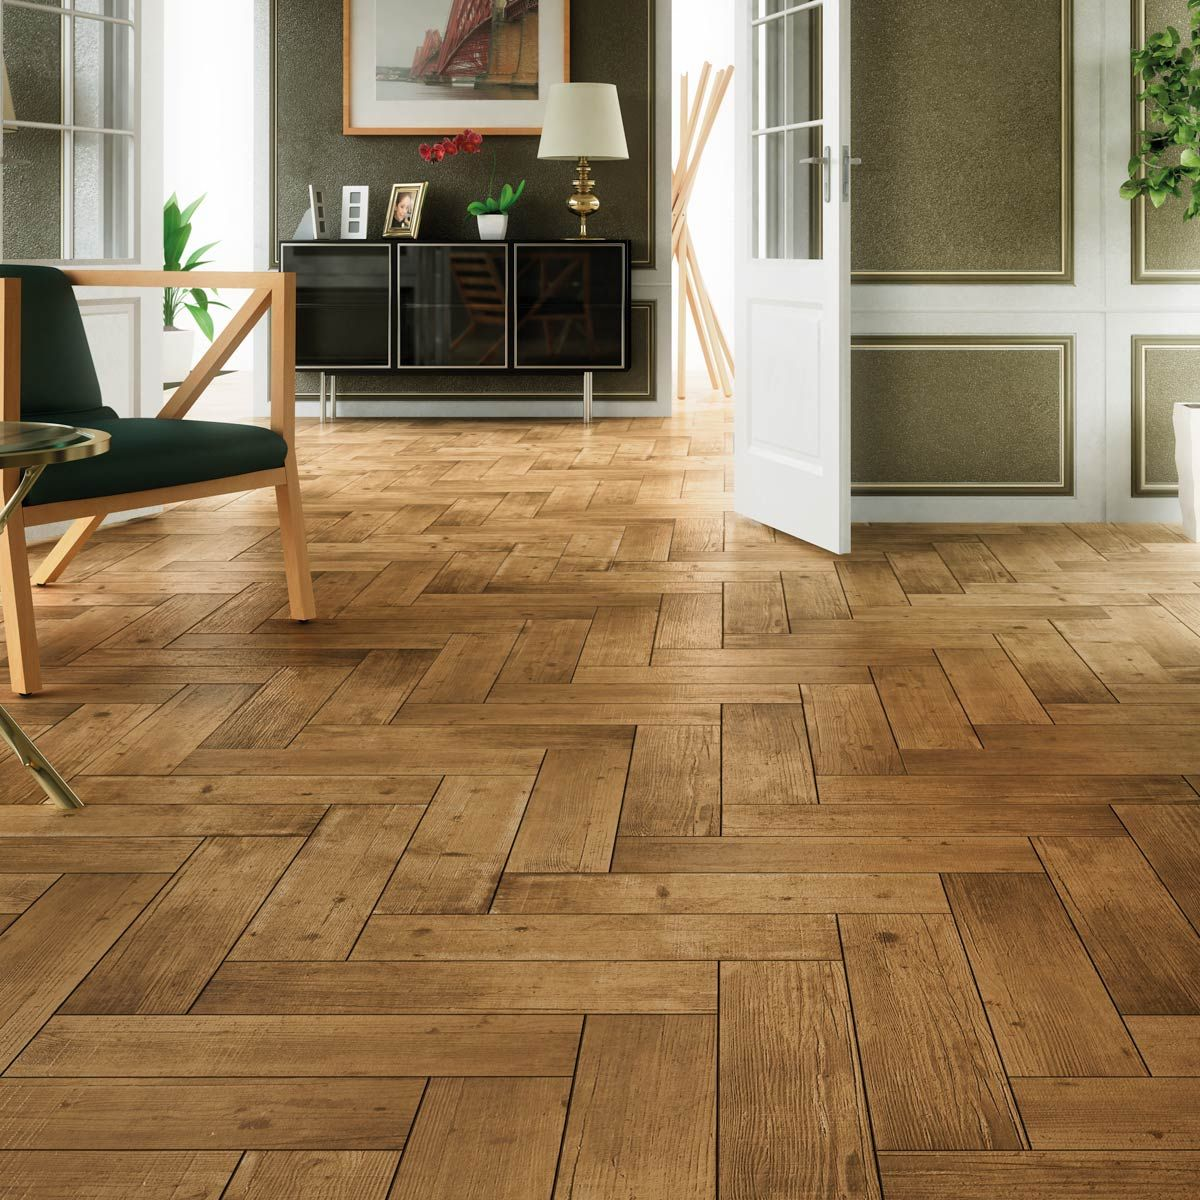 Arteak Castano Wood effect tiles, Wood effect floor